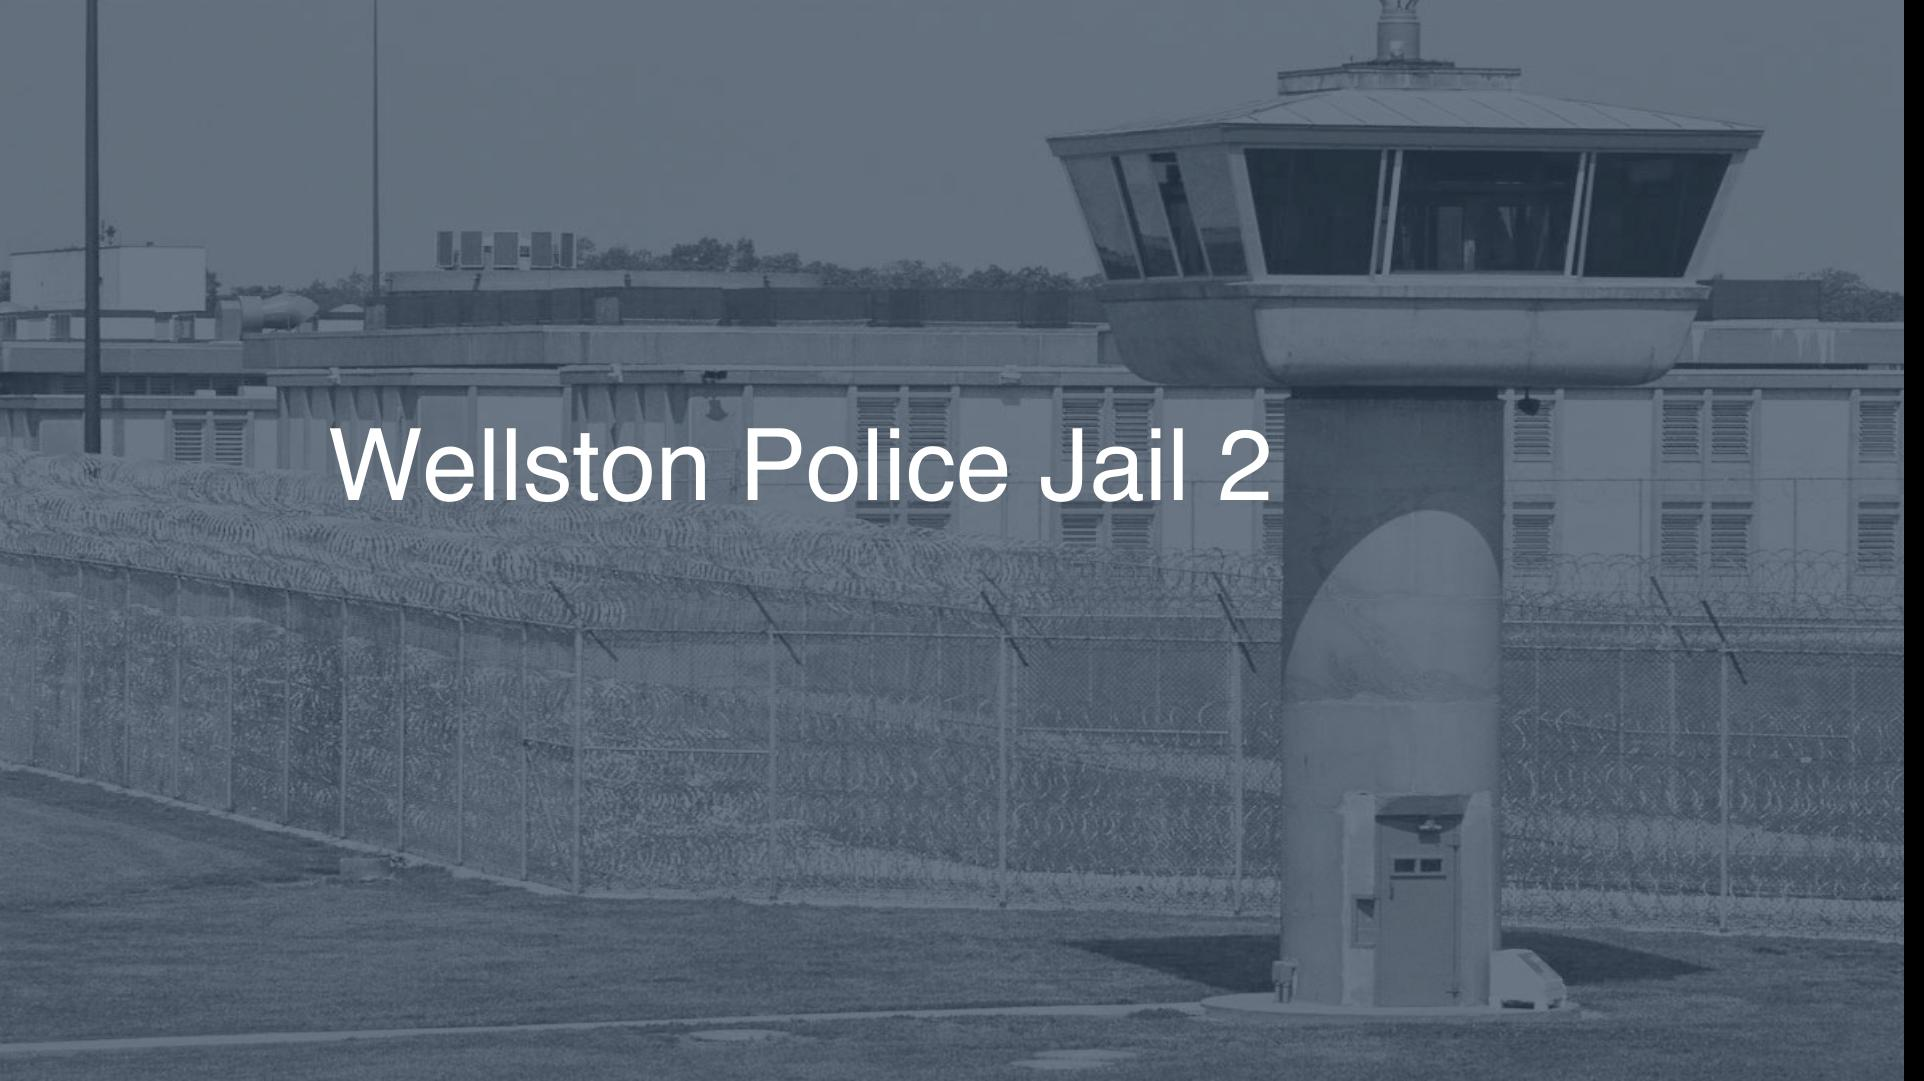 Wellston Police Jail correctional facility picture